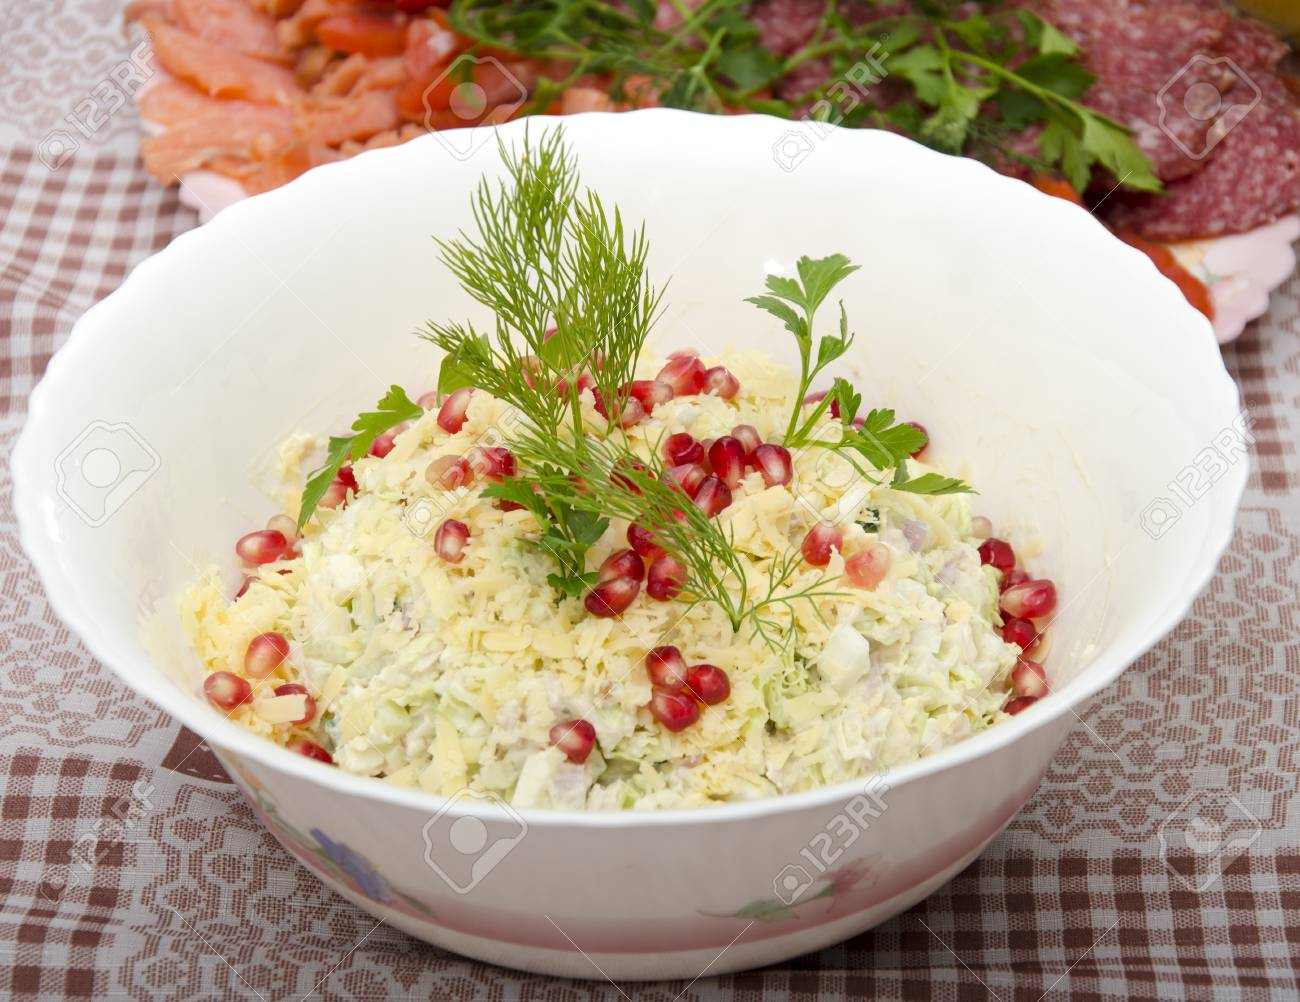 salad in a dish on a table Stock Photo - 17167656